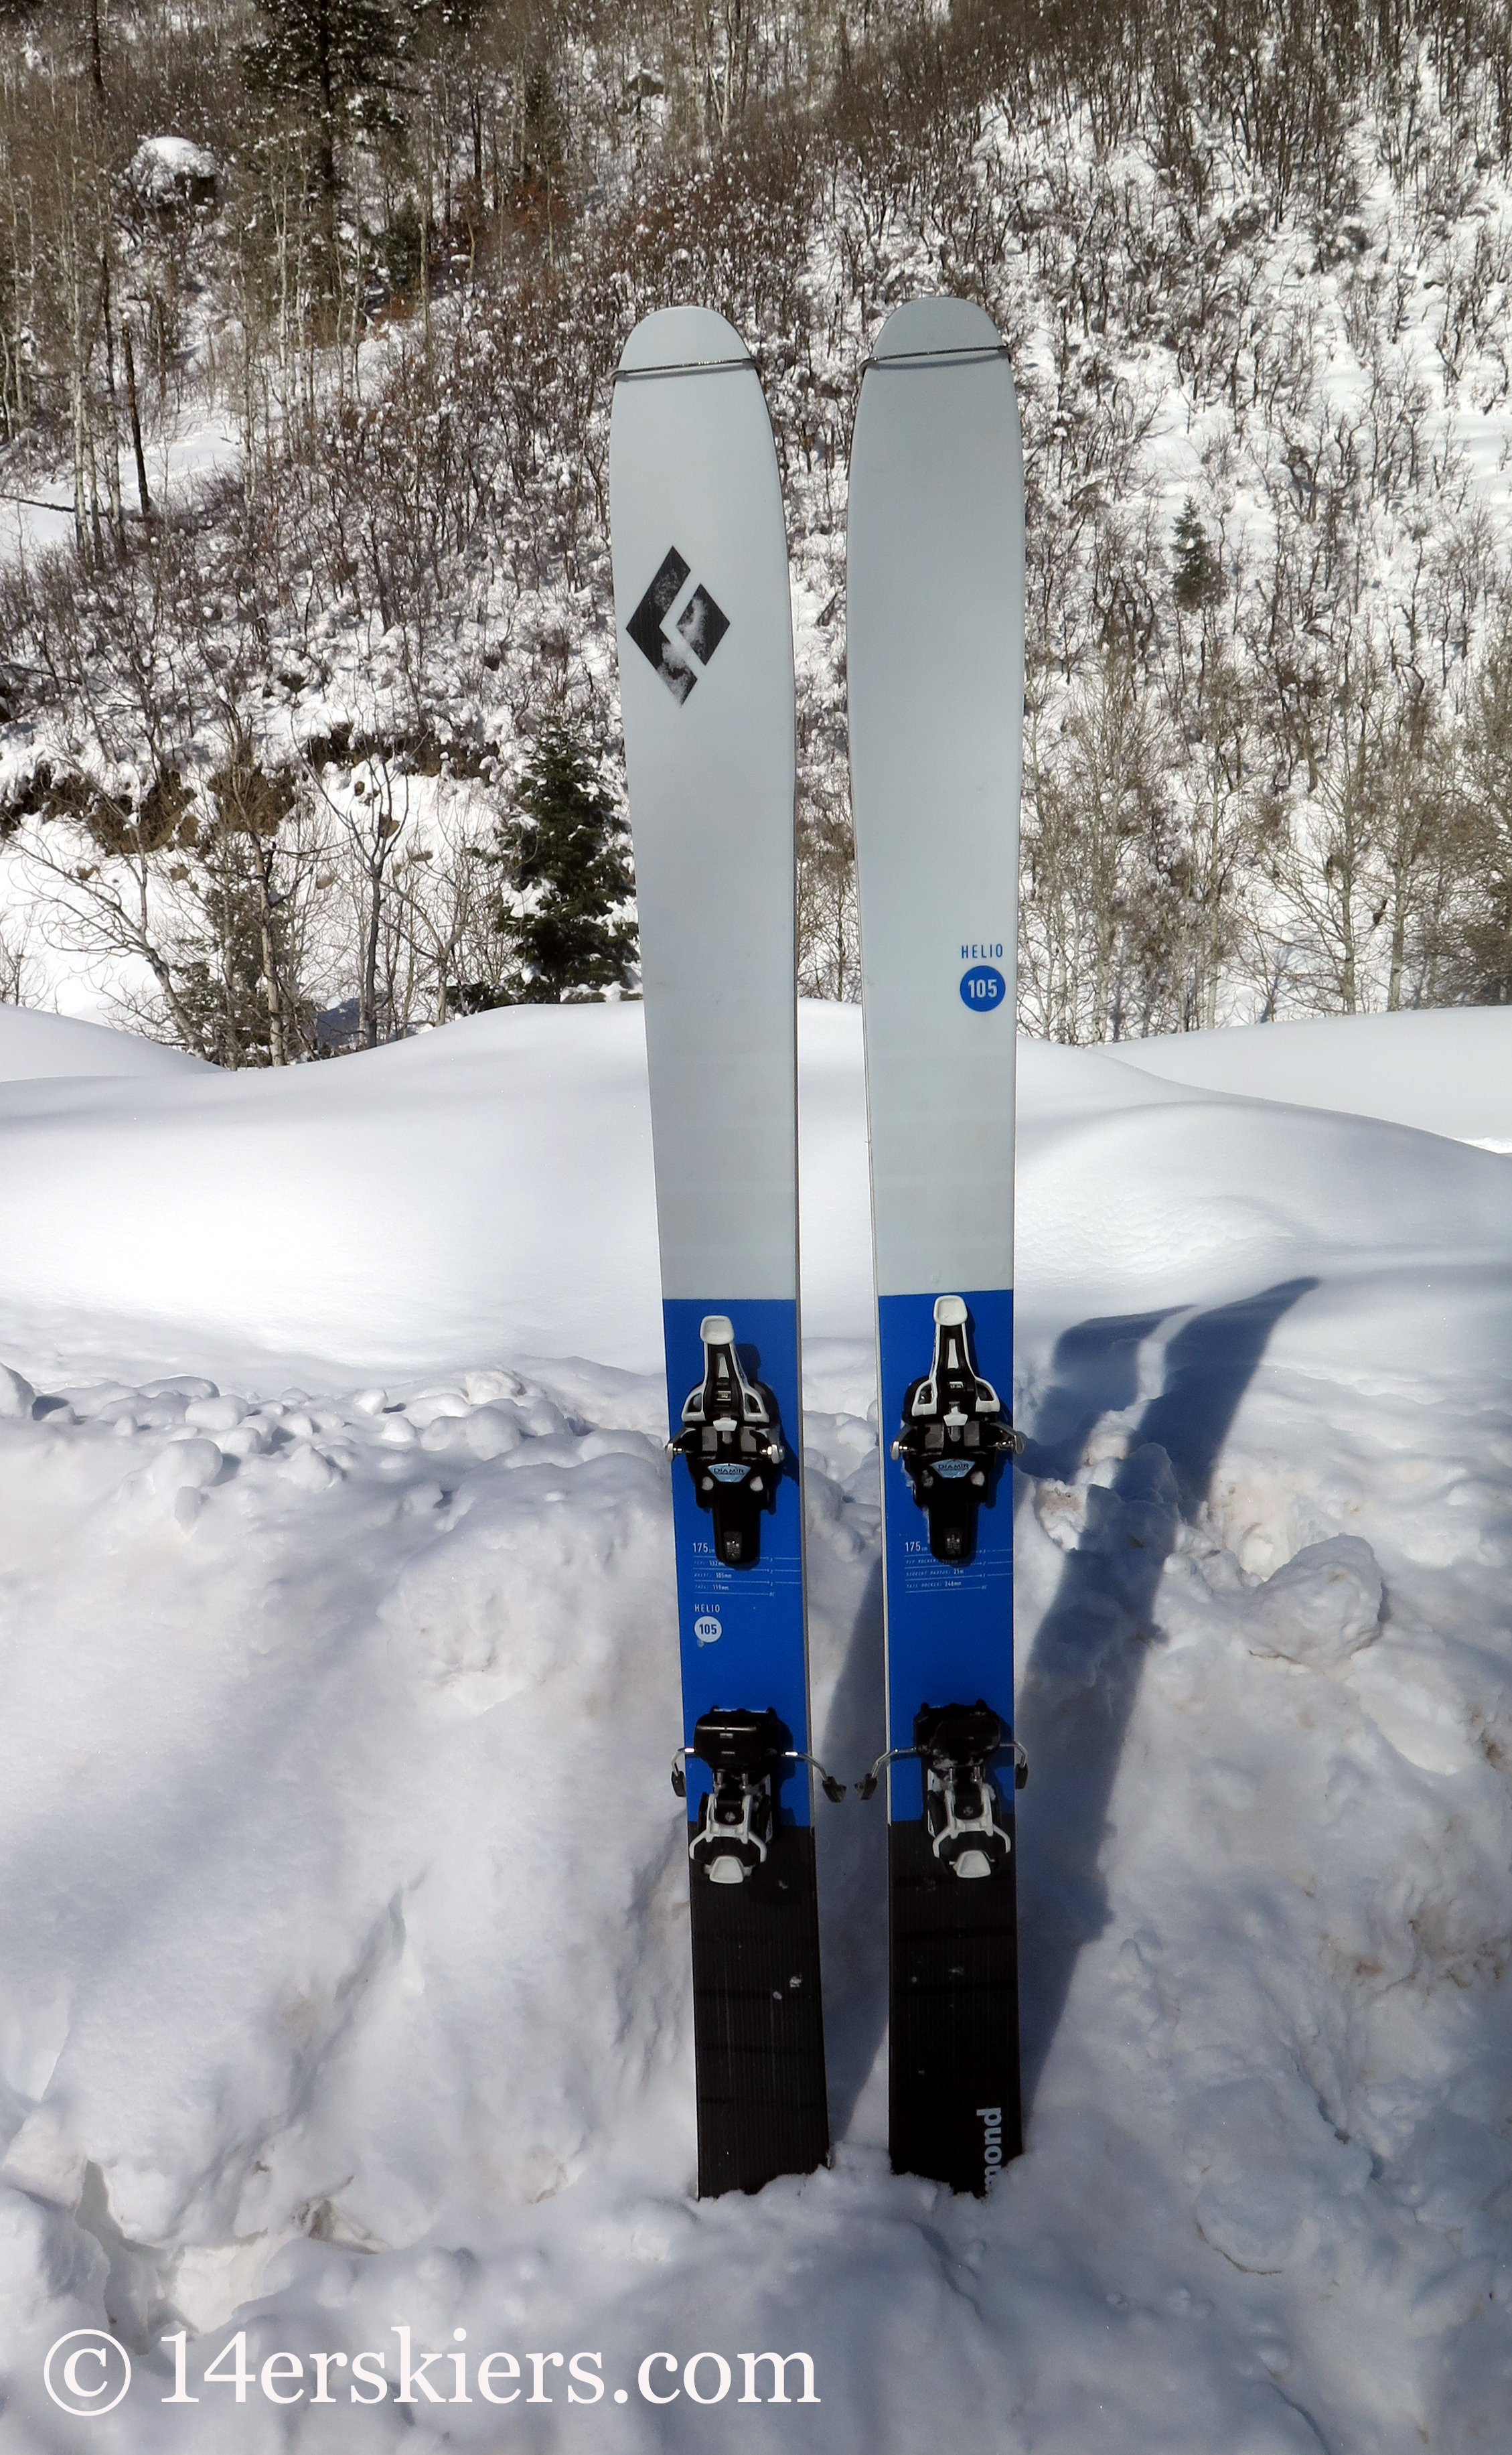 24a1058b5e Gear Review  Black Diamond Helio 105 Skis - 14erskiers.com